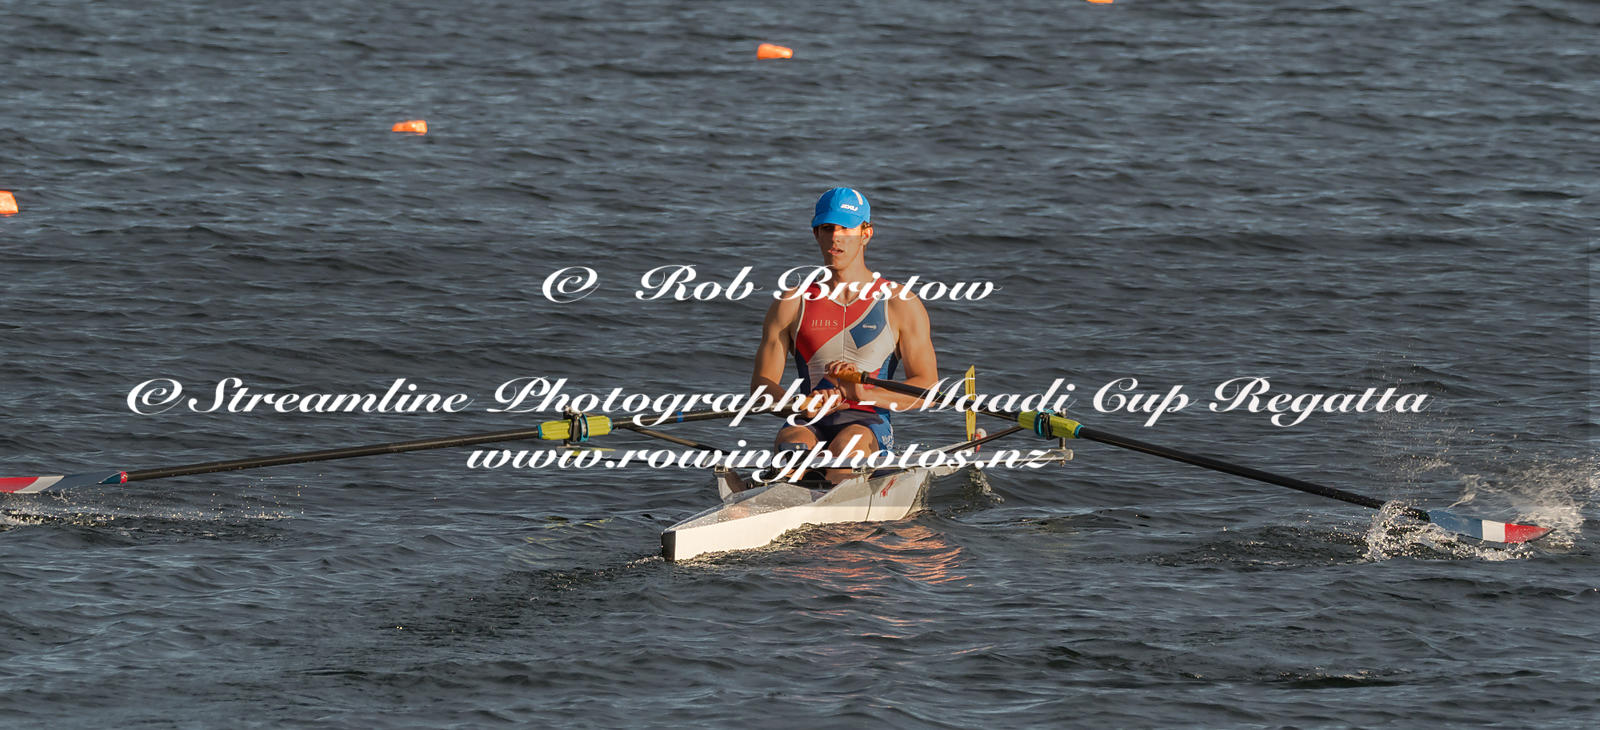 Taken during the 2019 NZSS Championships - Maadi Cup; Friday March 29, 2019: Copyright/Photo: Rob Bristow 2019   -- 201903290...